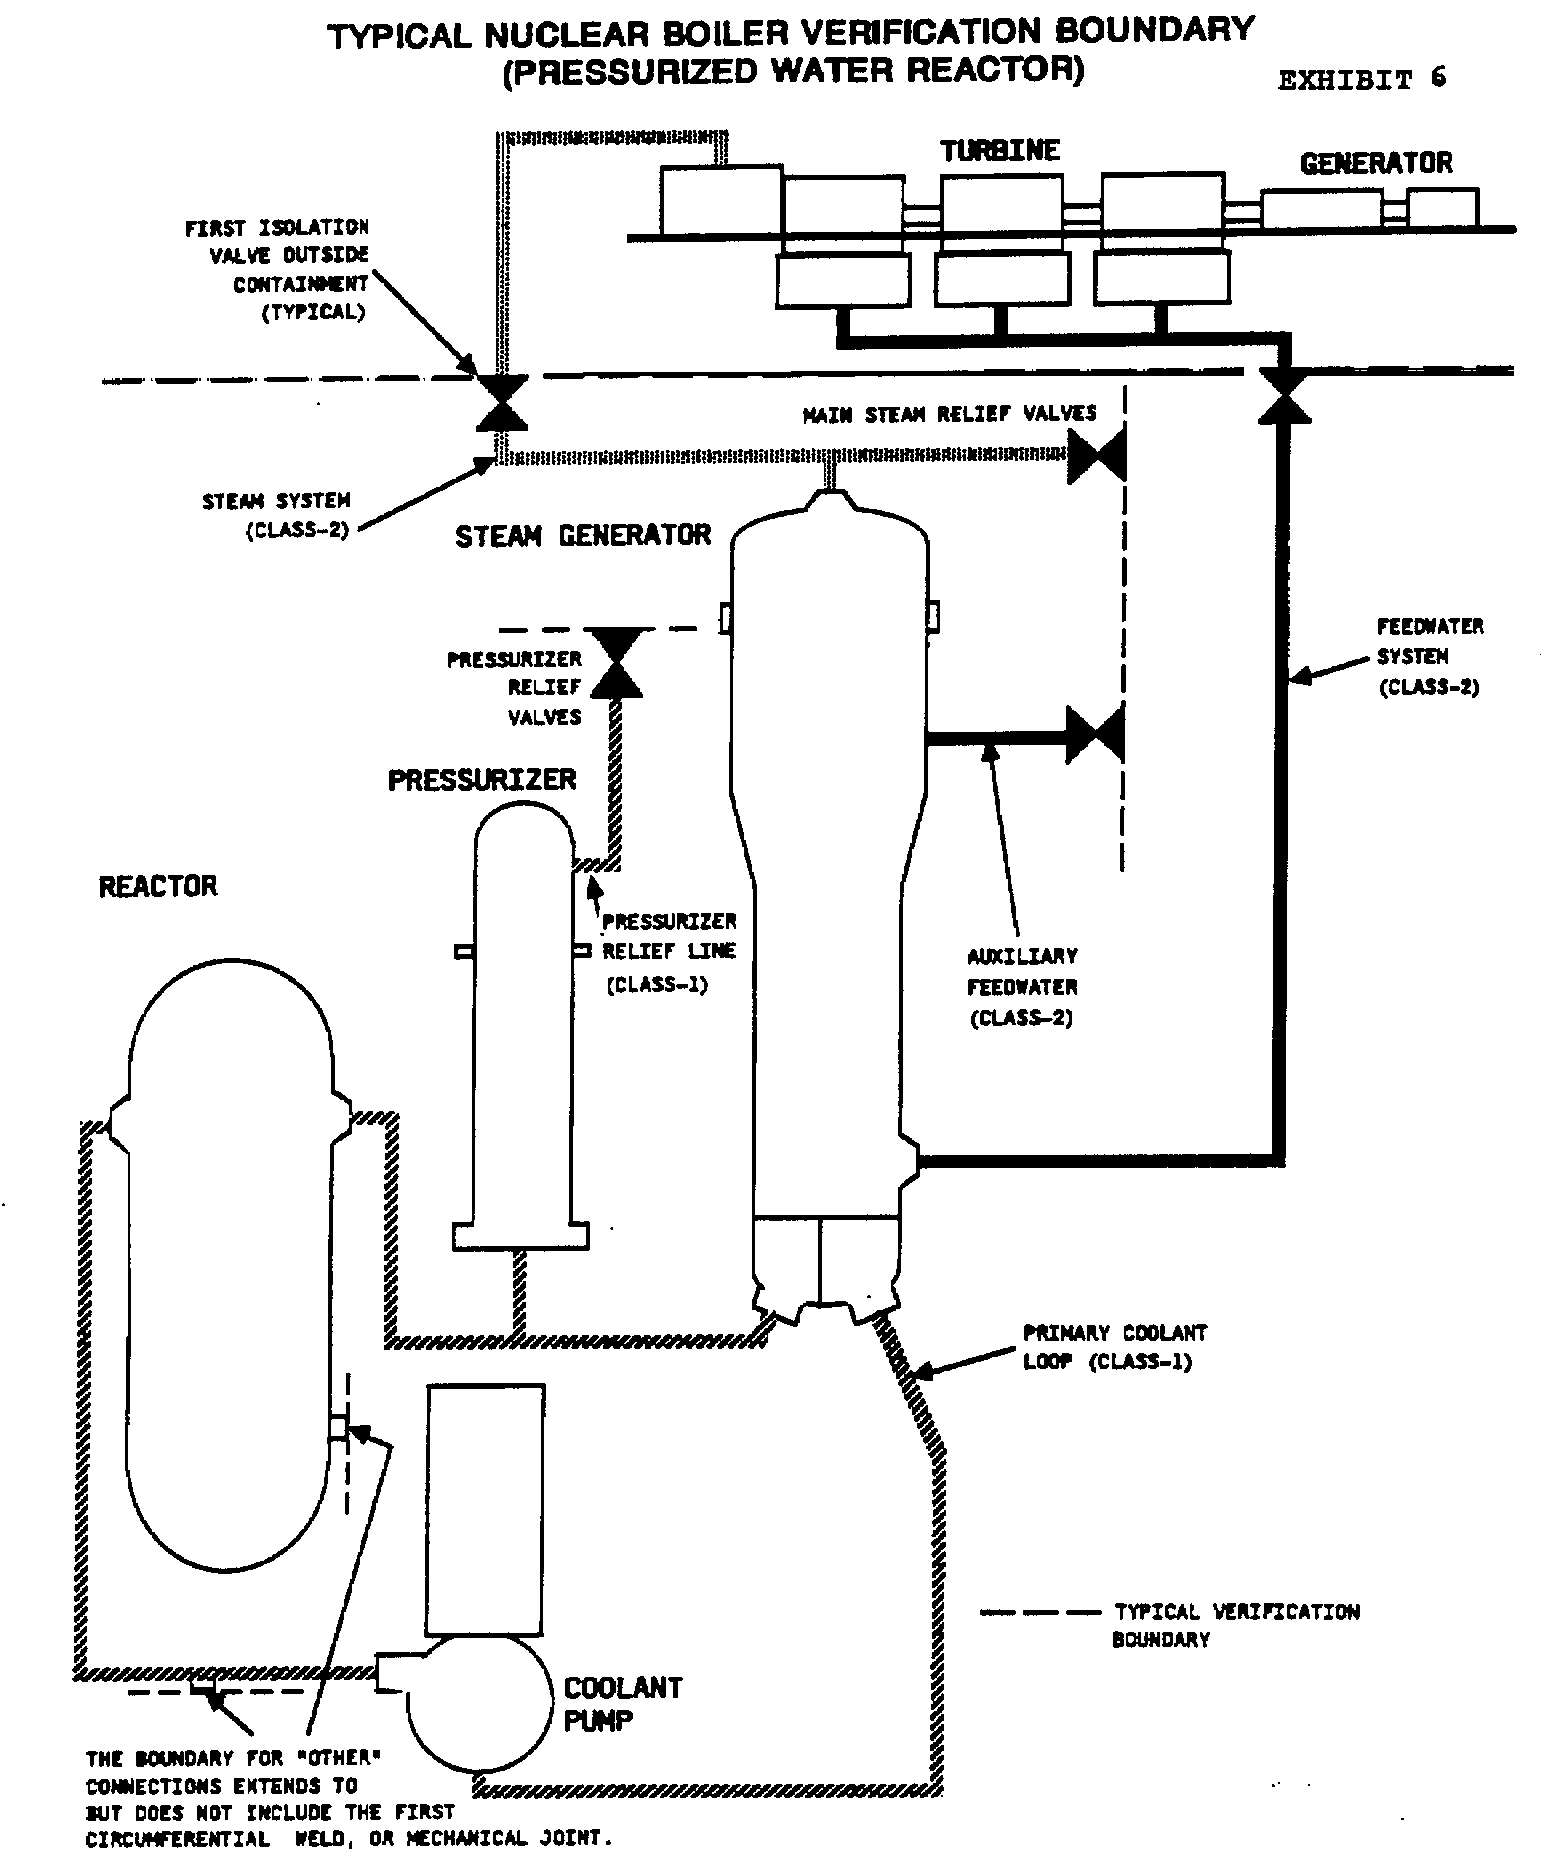 typical nuclear boiler verification boundary (pressurized water reactor)